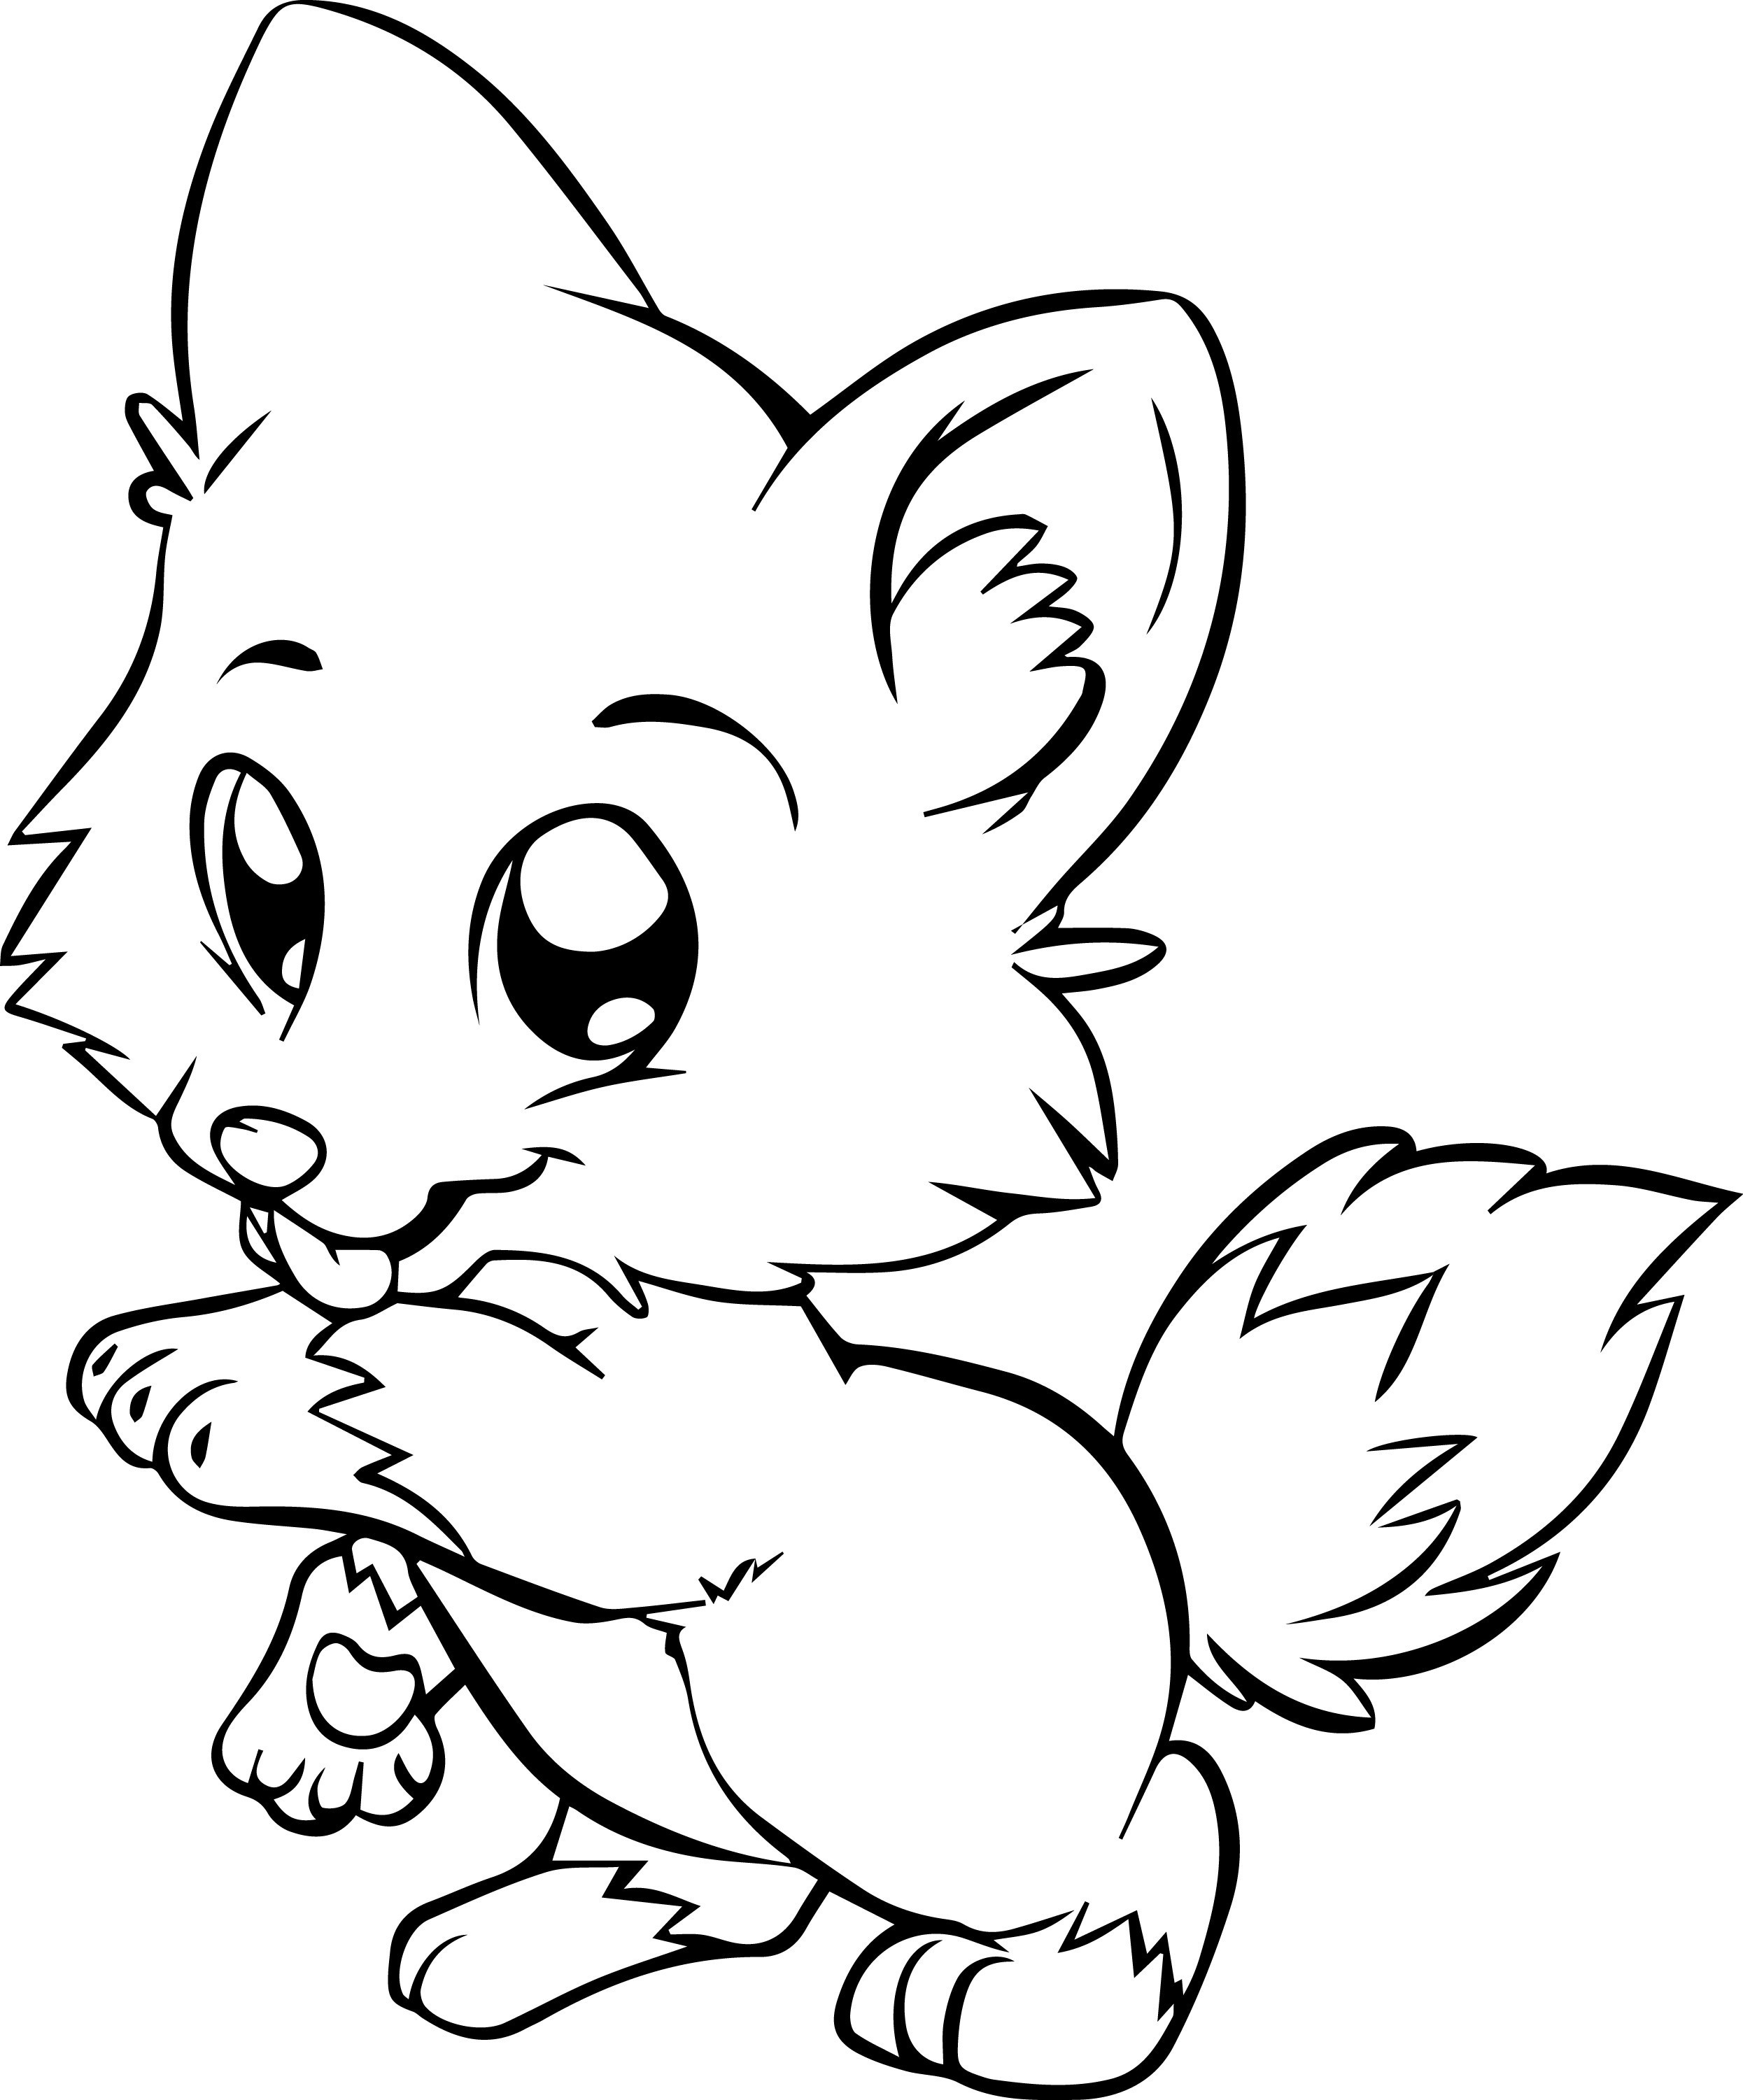 kawaii unicorn cat coloring pages coloring pages of cute unicorns at getdrawings free download unicorn cat pages coloring kawaii